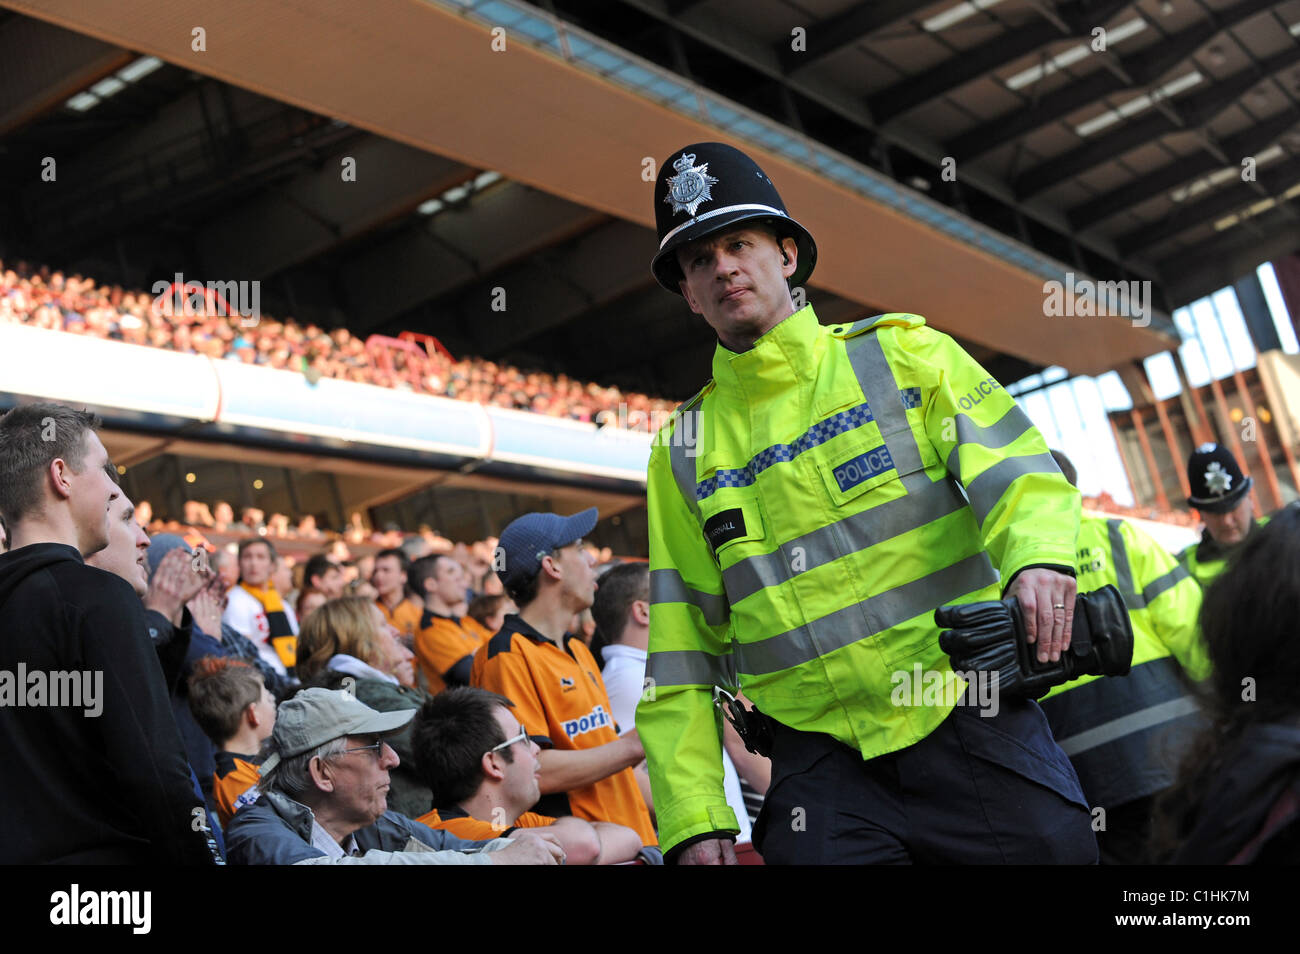 police officers policing football crowd uk - Stock Image